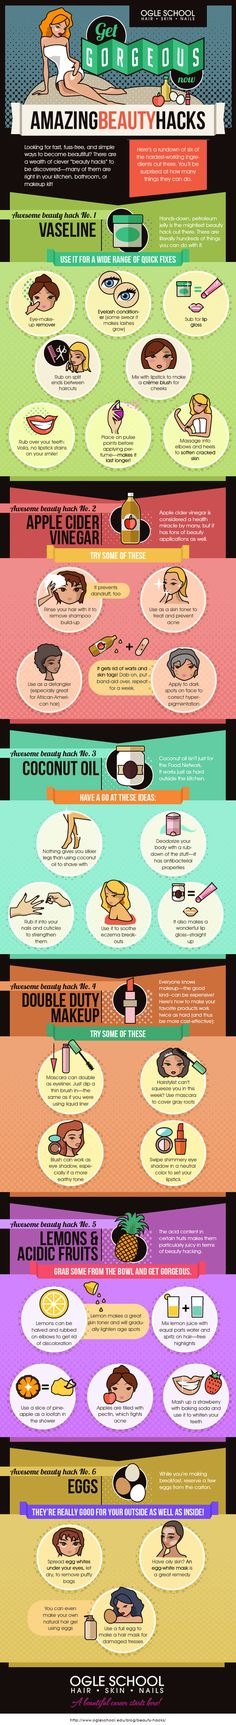 Get Gorgeous Now: Six Amazing Beauty Hacks [Infographic]